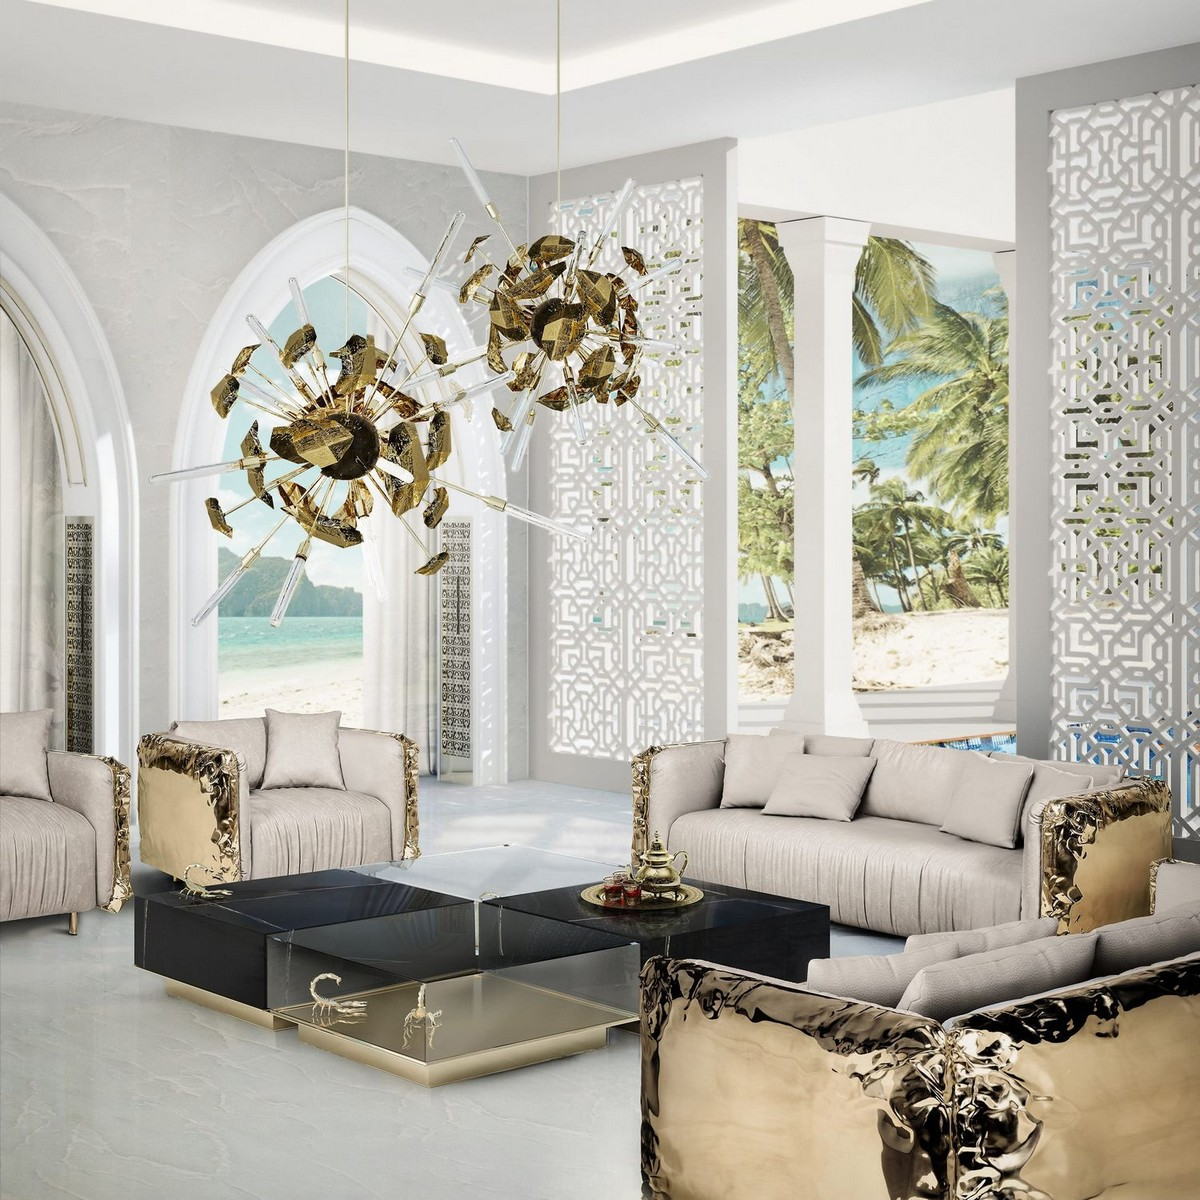 living room decor inspirations Exclusive Living Room Decor Inspirations (Part II) bl2